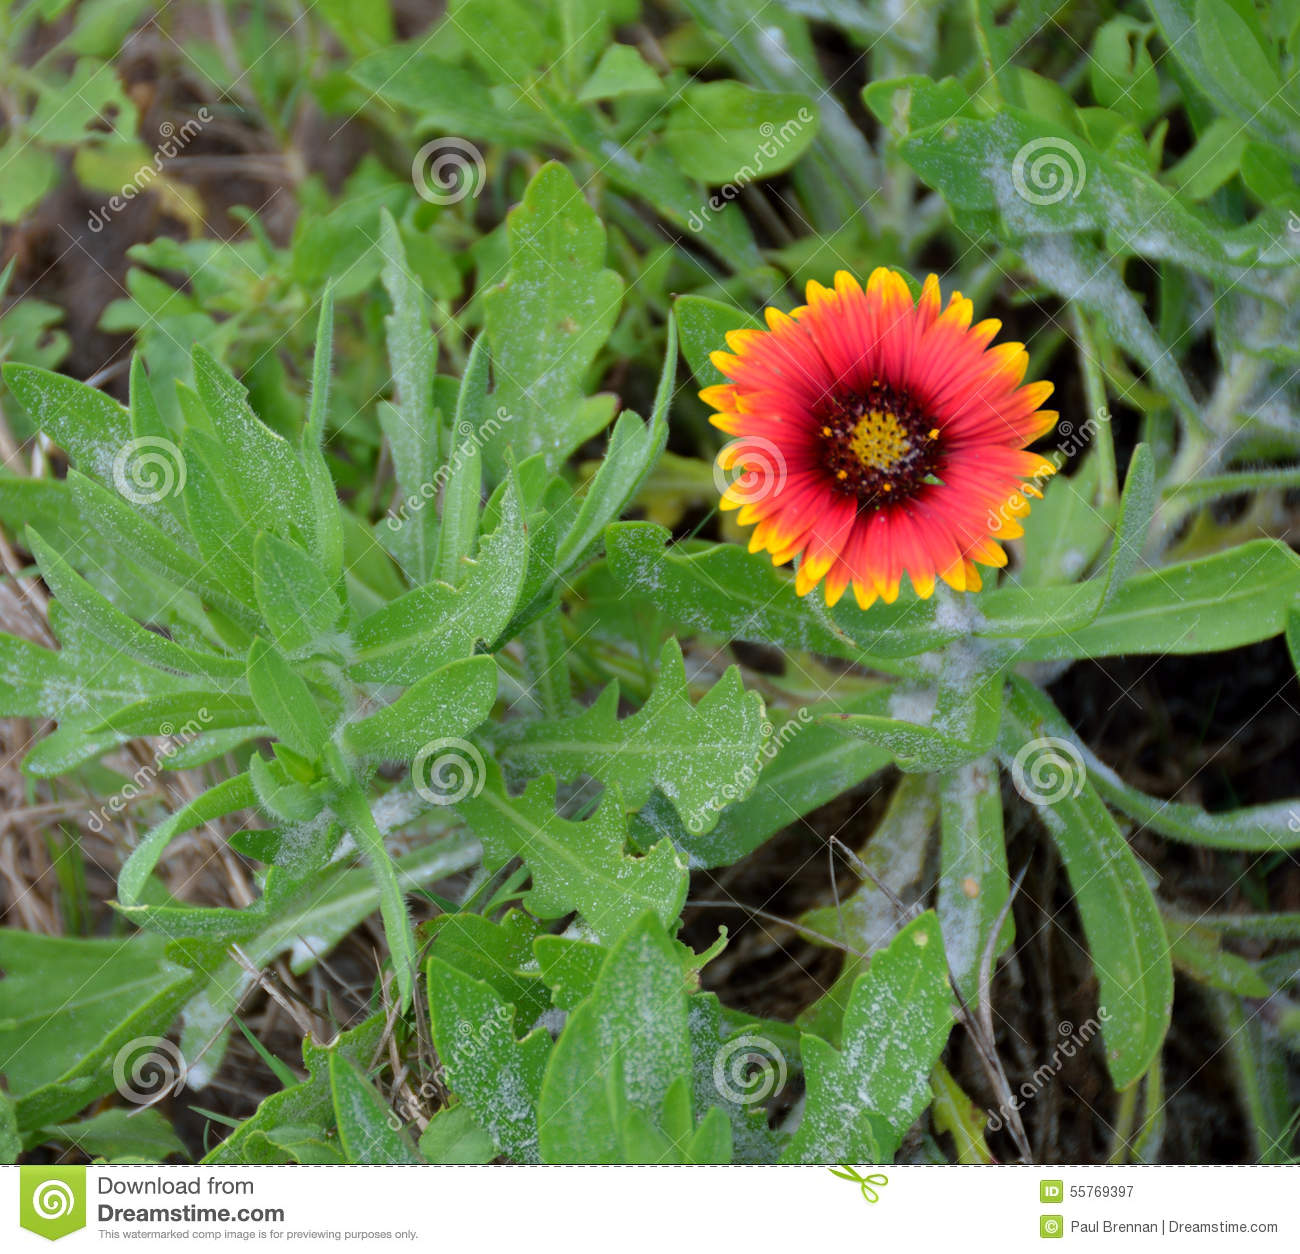 Indian blanket flower plant stock image image of outdoors blanket indian blanket flower plant mightylinksfo